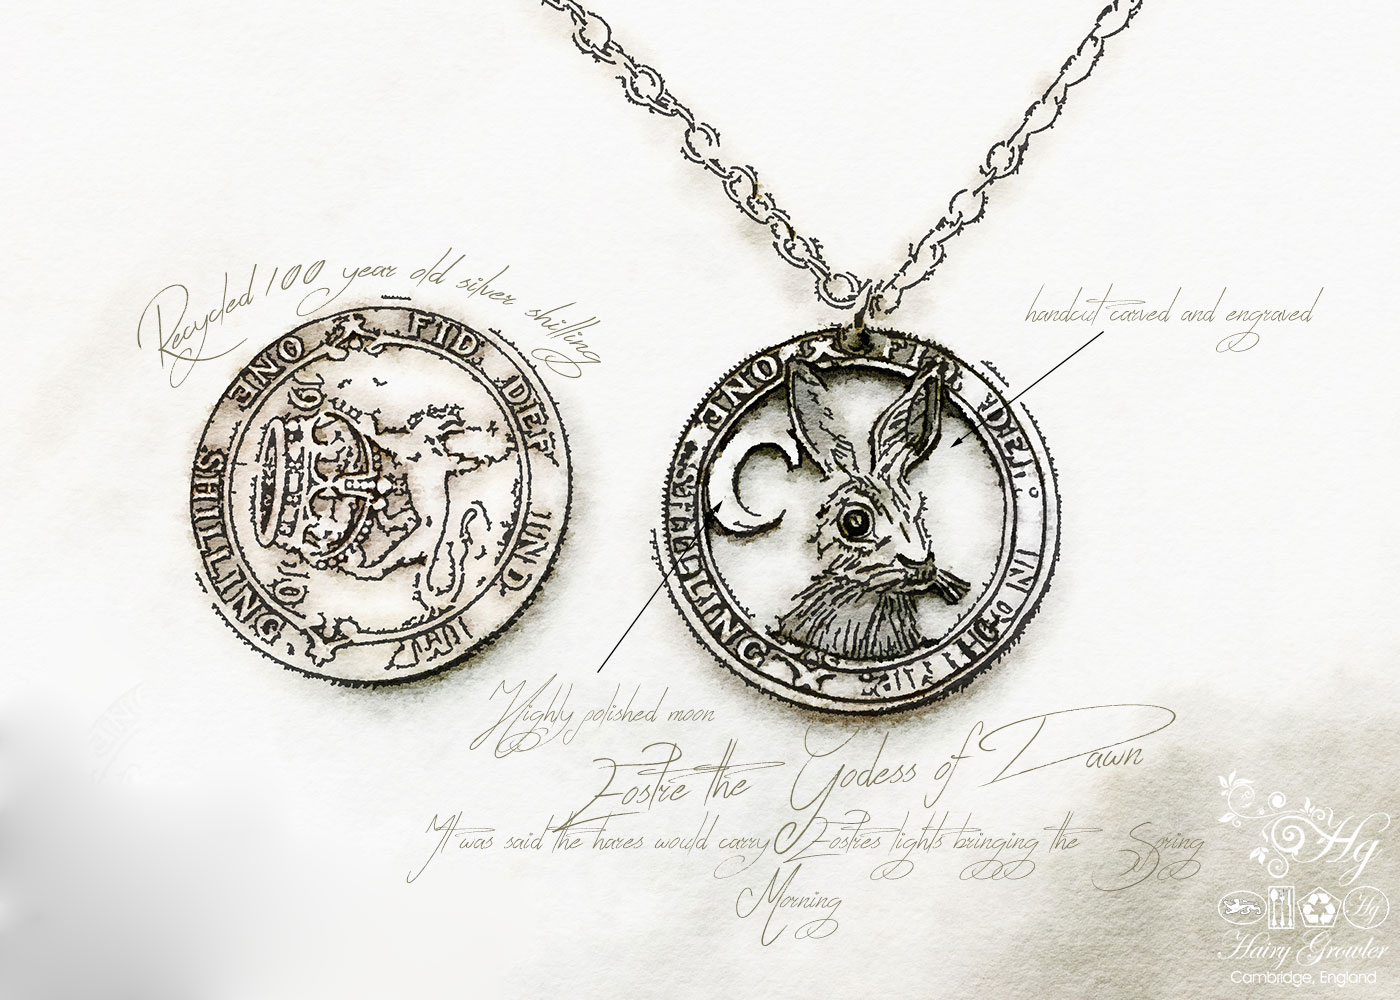 Handcrafted and recycled silver shilling The Silver Shilling collection. silver hare necklace totally handcrafted and recycled from old sterling silver shilling coins. Designed and created by Hairy Growler Jewellery, Cambridge, UK. necklace